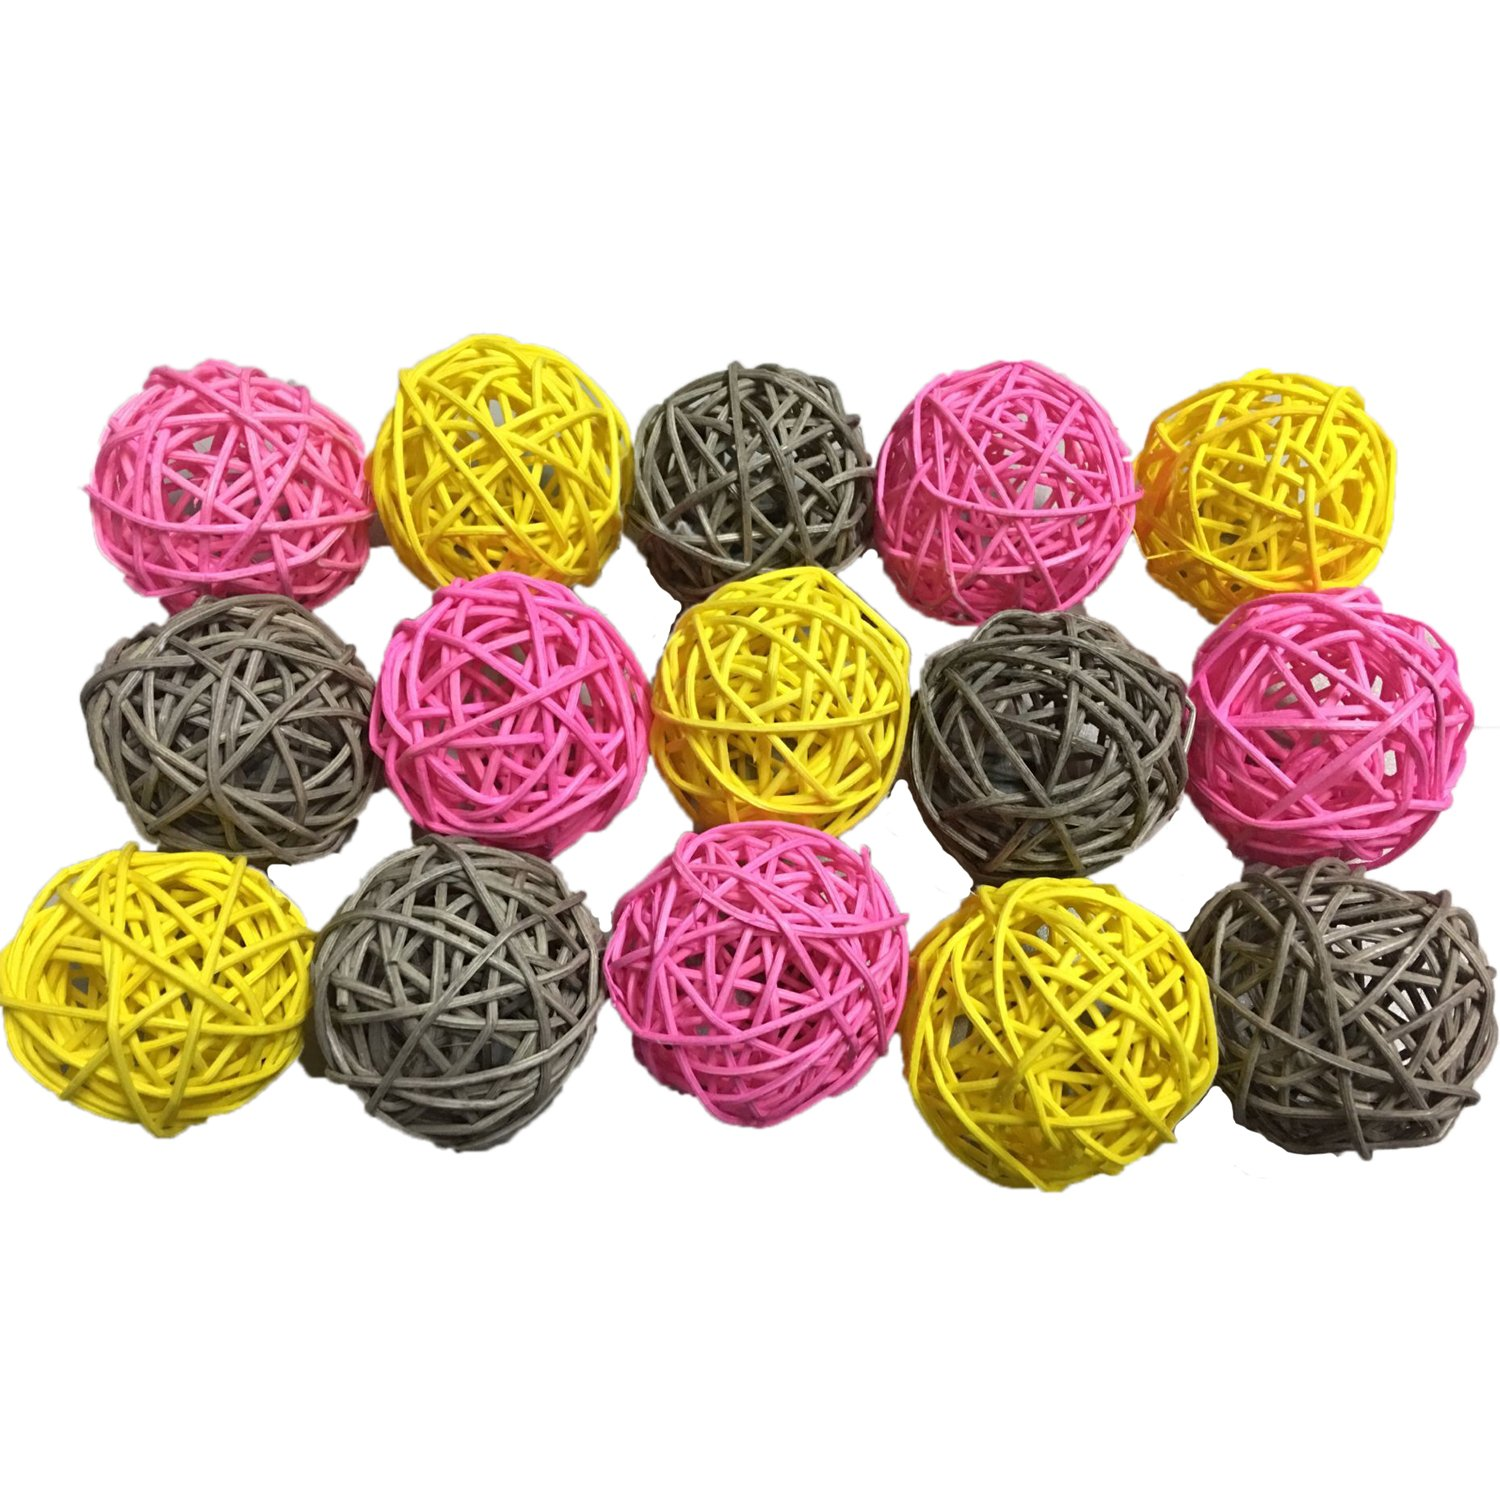 15PCS Mixed Pink Yellow Grey Decorative Wicker Rattan Ball Wedding Girl Birthday Christening Baby Shower Nursery Hanging Decoration DreammadeStudio